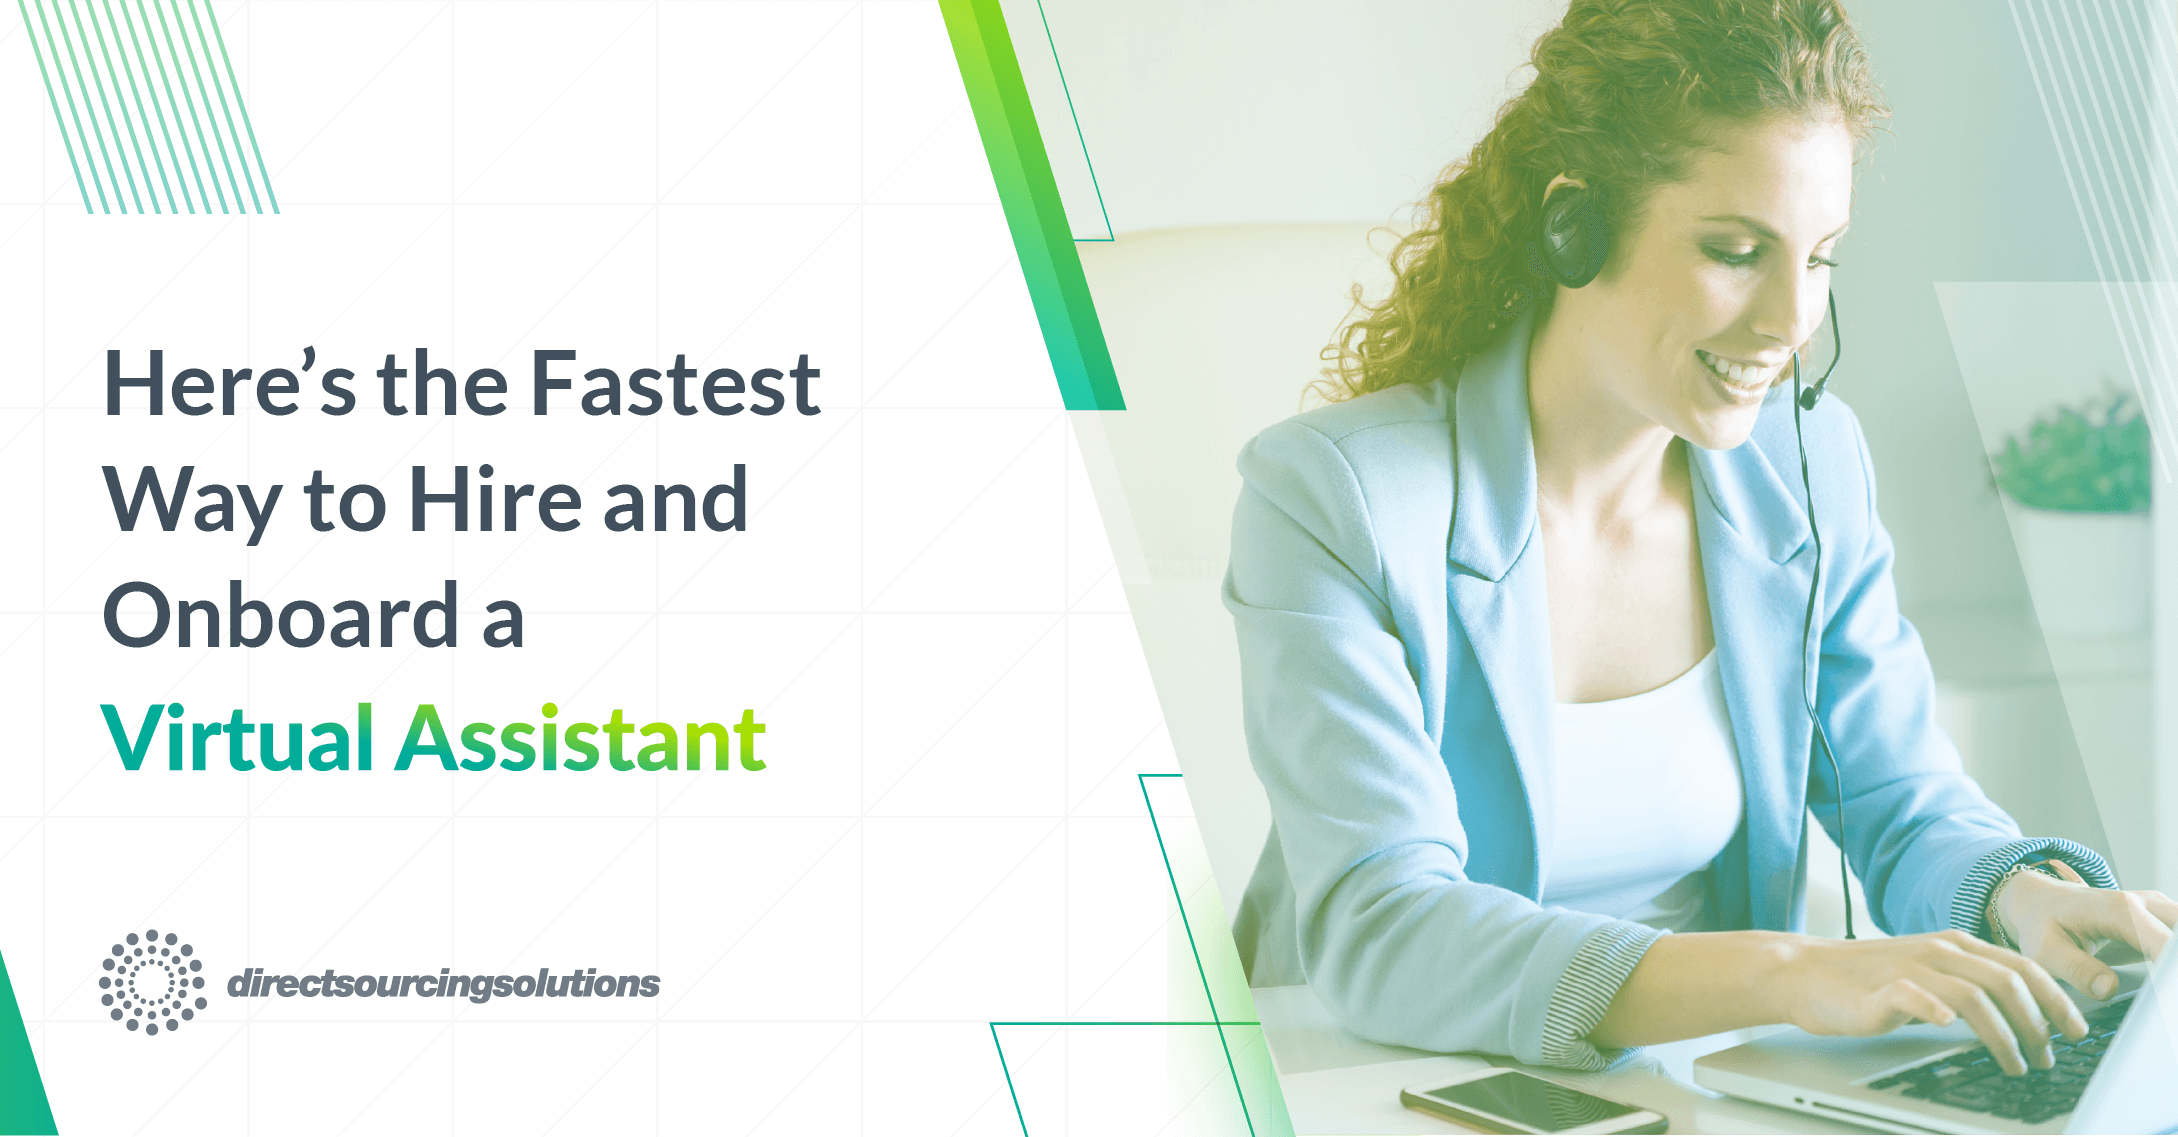 Here's the Fastest Way to Hire and Onboard a Virtual Assistant